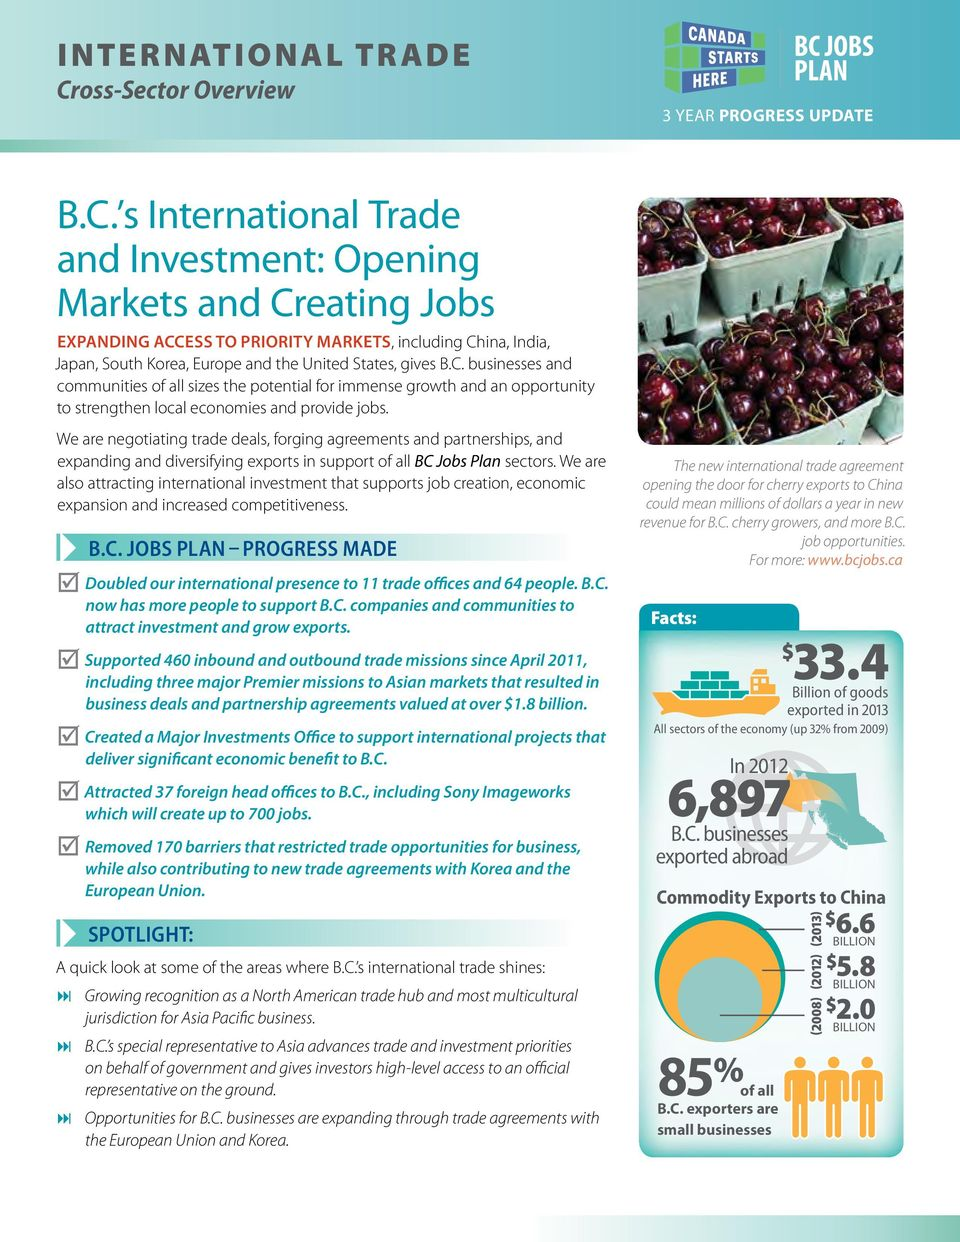 s International Trade and Investment: Opening Markets and Creating Jobs EXPANDING ACCESS TO PRIORITY MARKETS, including China, India, Japan, South Korea, Europe and the United States, gives B.C. businesses and communities of all sizes the potential for immense growth and an opportunity to strengthen local economies and provide jobs.